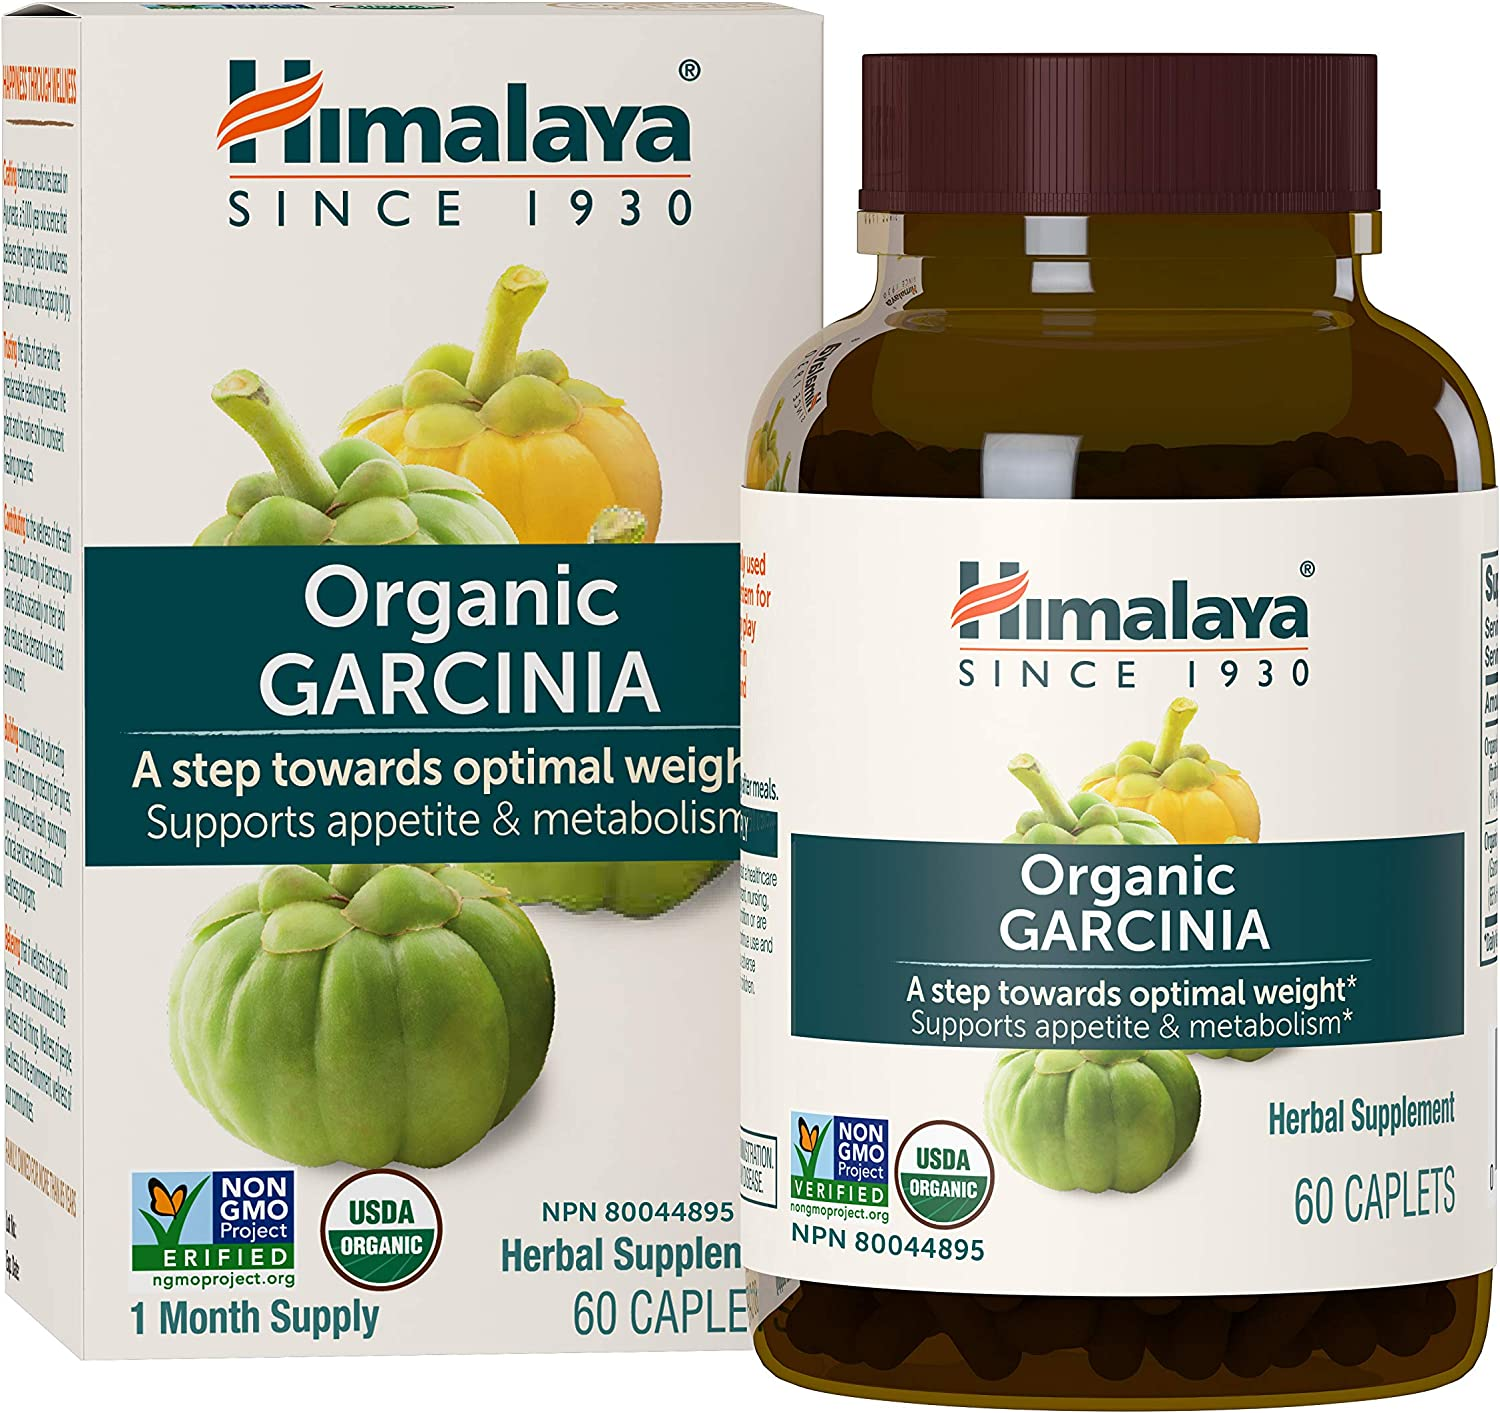 Amazon Com Himalaya Organic Garcinia Cambogia Equivalent To 2 312mg Of Garcinia Powder 60 Caplets For Weight Loss 1 Month Supply Health Personal Care